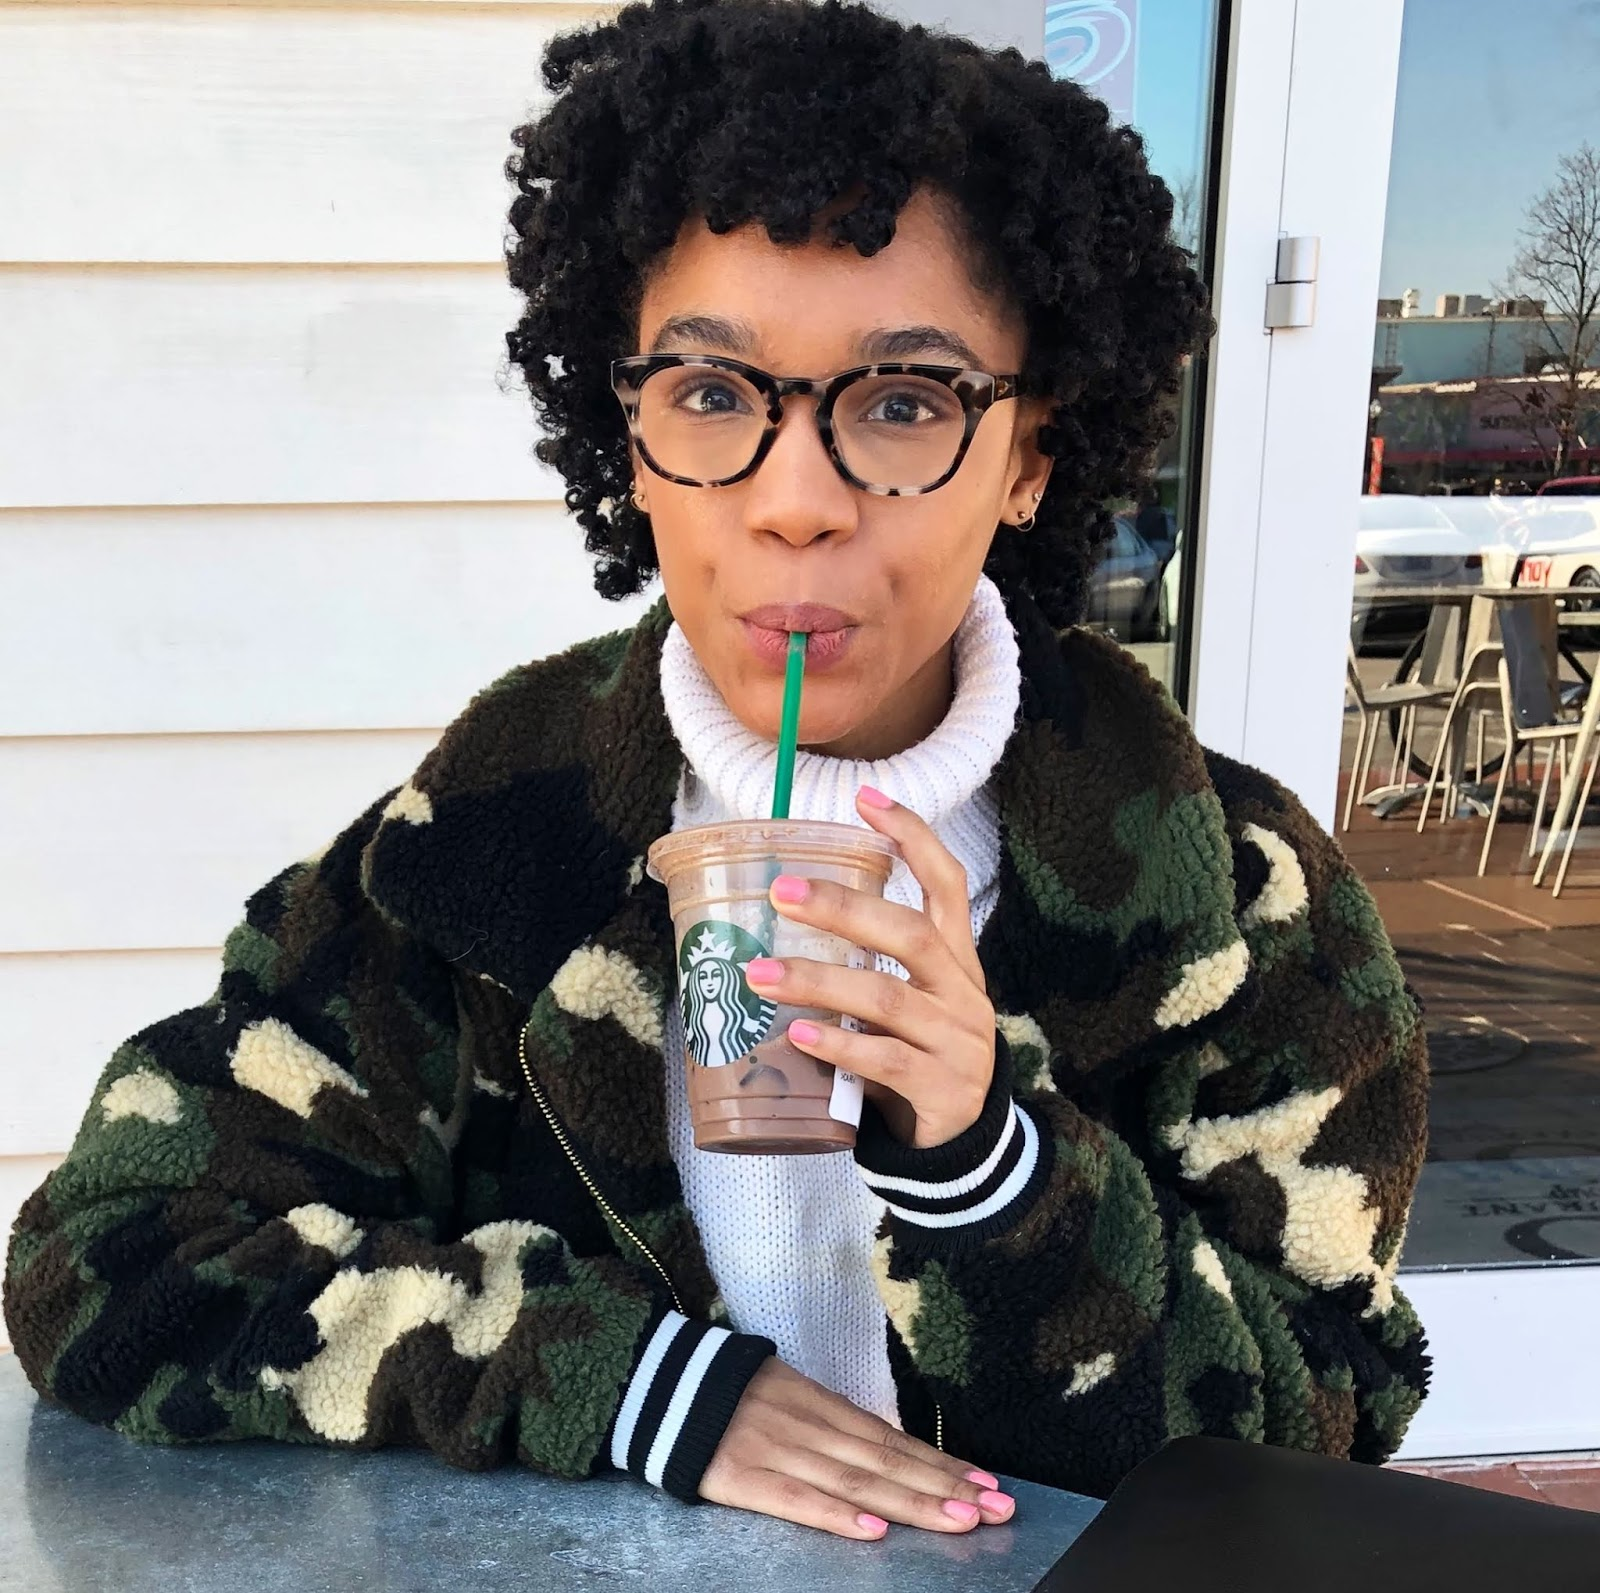 Angelica of The Strong Suit NC fashion and style blogger drinking Starbucks in Camo Jacket